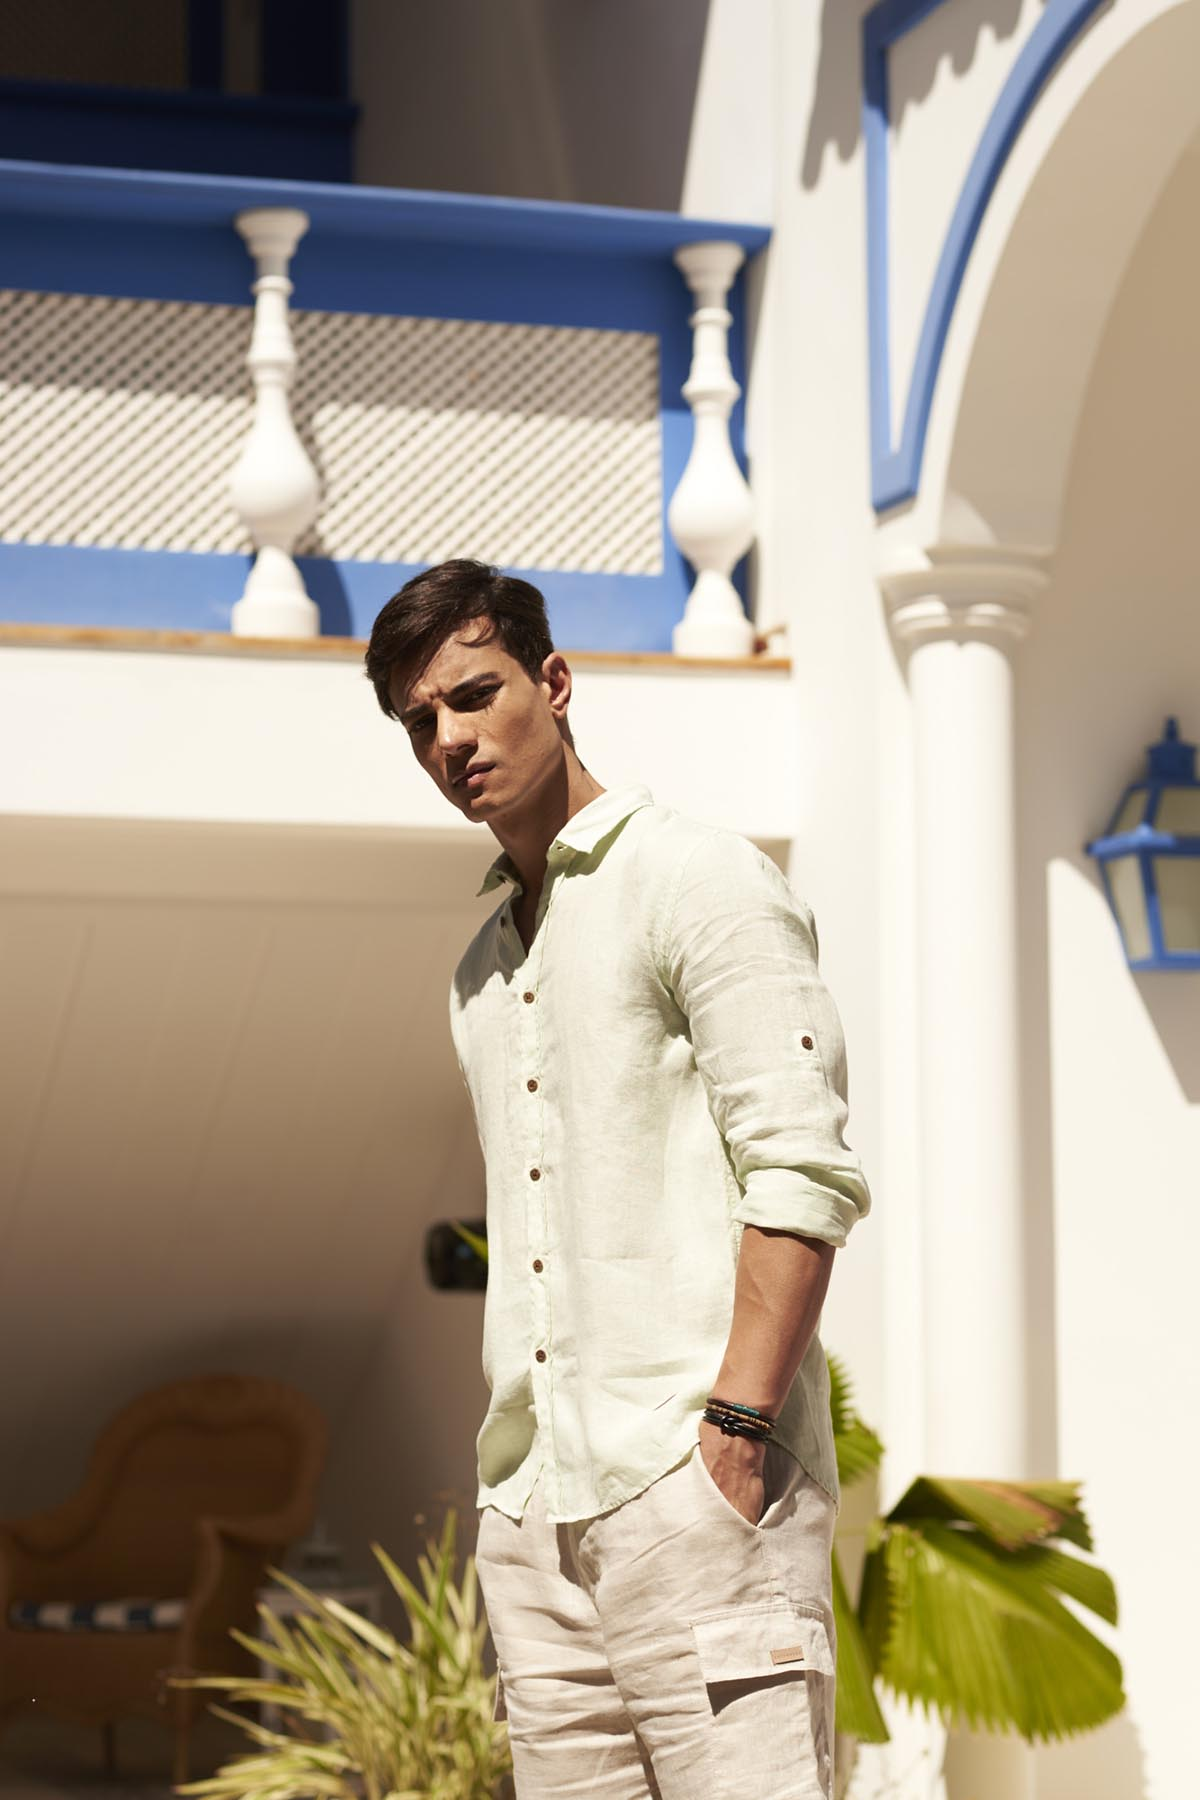 Sulevan Araujo by Chrystian Henrique for Catamaran and Brazilian Male Model